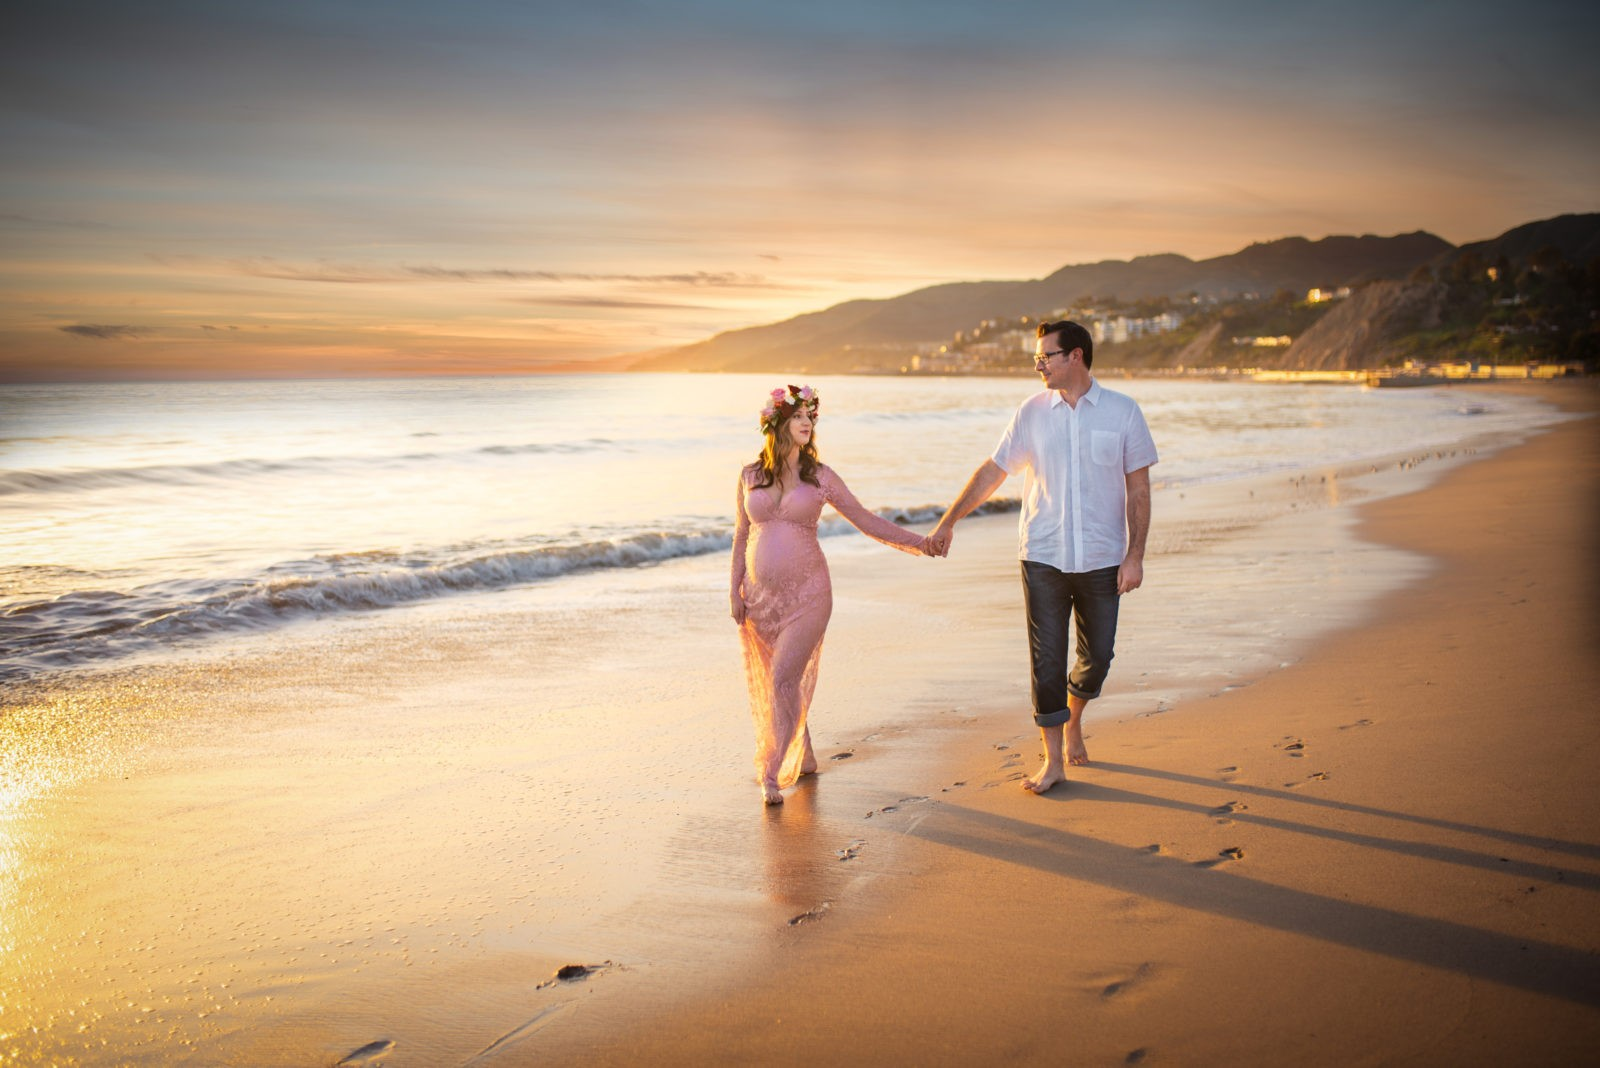 Who said one can't have it all? ArtShaped Photography and Birth Services can accomplish photographying bellies and families at both the beach and in the montains nature, under two hours of time.